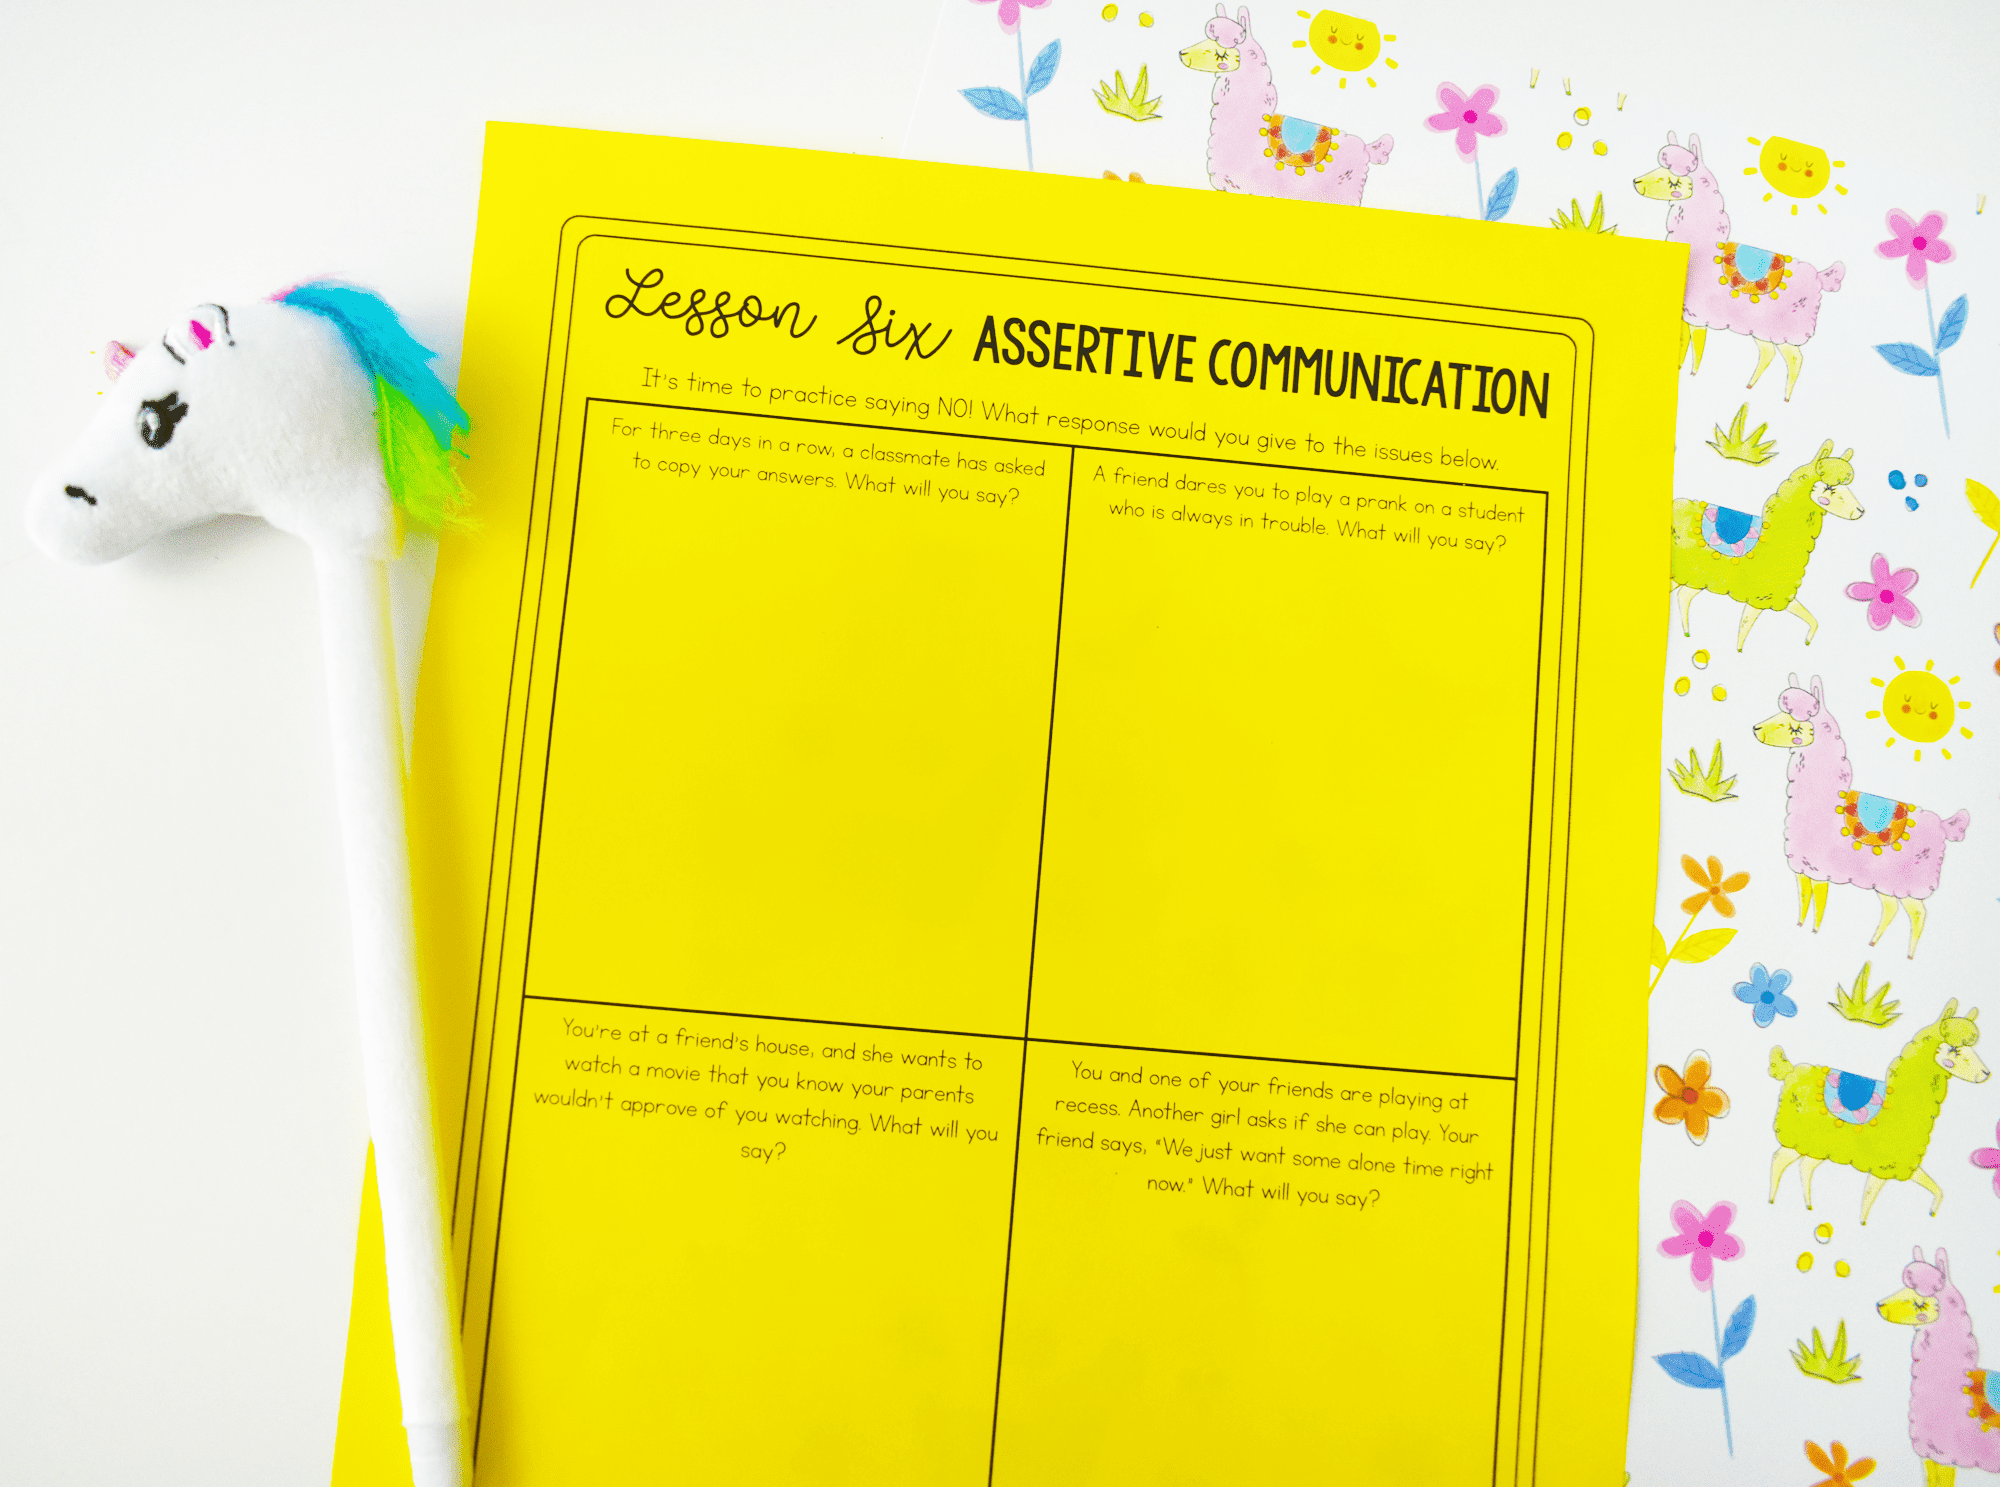 Assertive communication worksheet with a colorful pony pen to help curb relational aggression